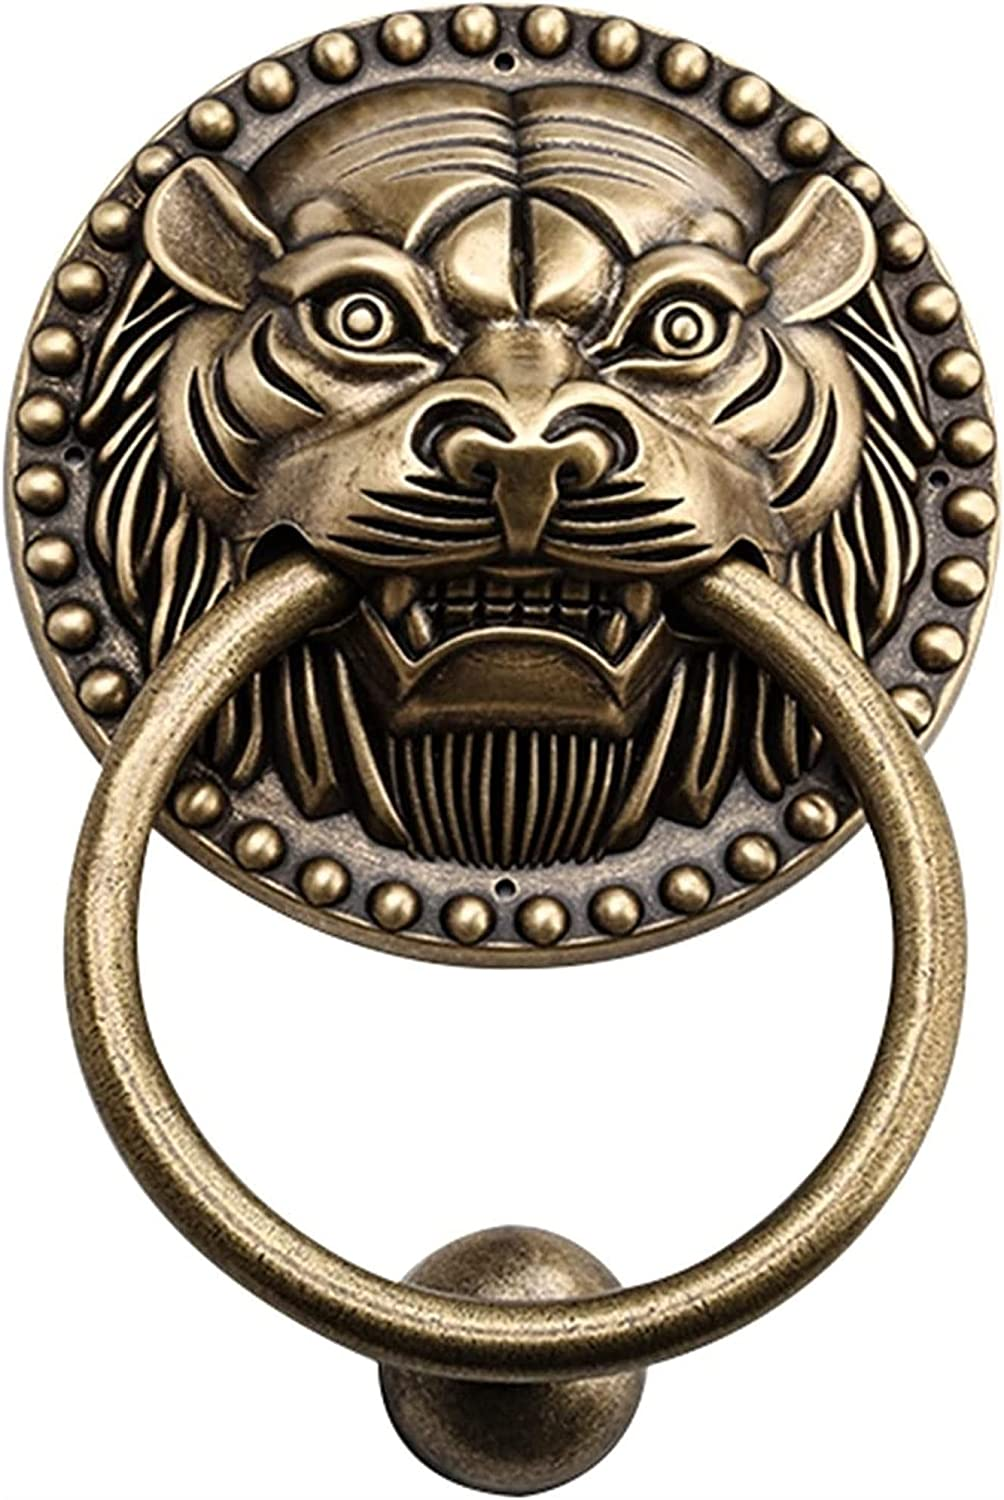 XJZM Classic Tiger Head Pull Ring with an Antique Bronze Finish,Deluxe Wall Decor Vintage Outdoor Door Knockers Gate Handle, for Indoor Furniture Cabinet Dressing Table Artisan Made HOM